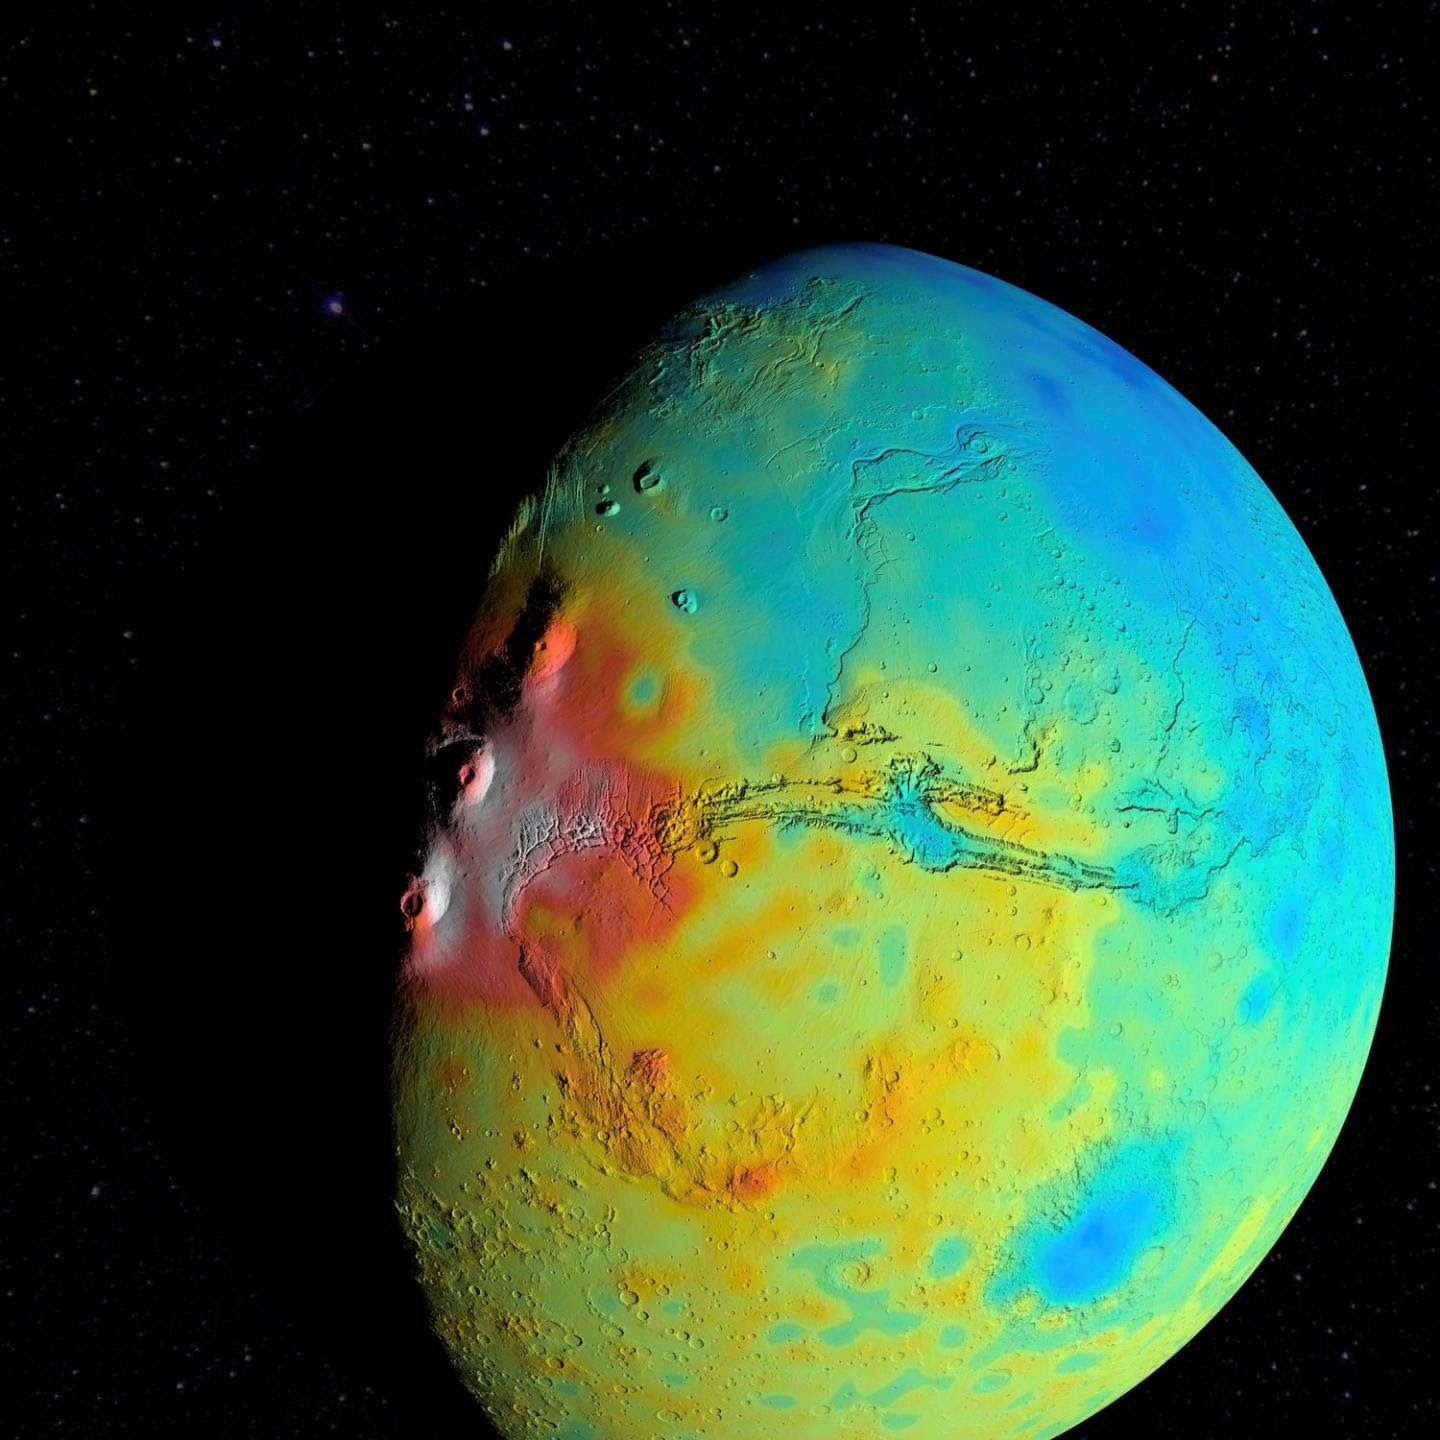 NASA Finds Mars' Crust Is